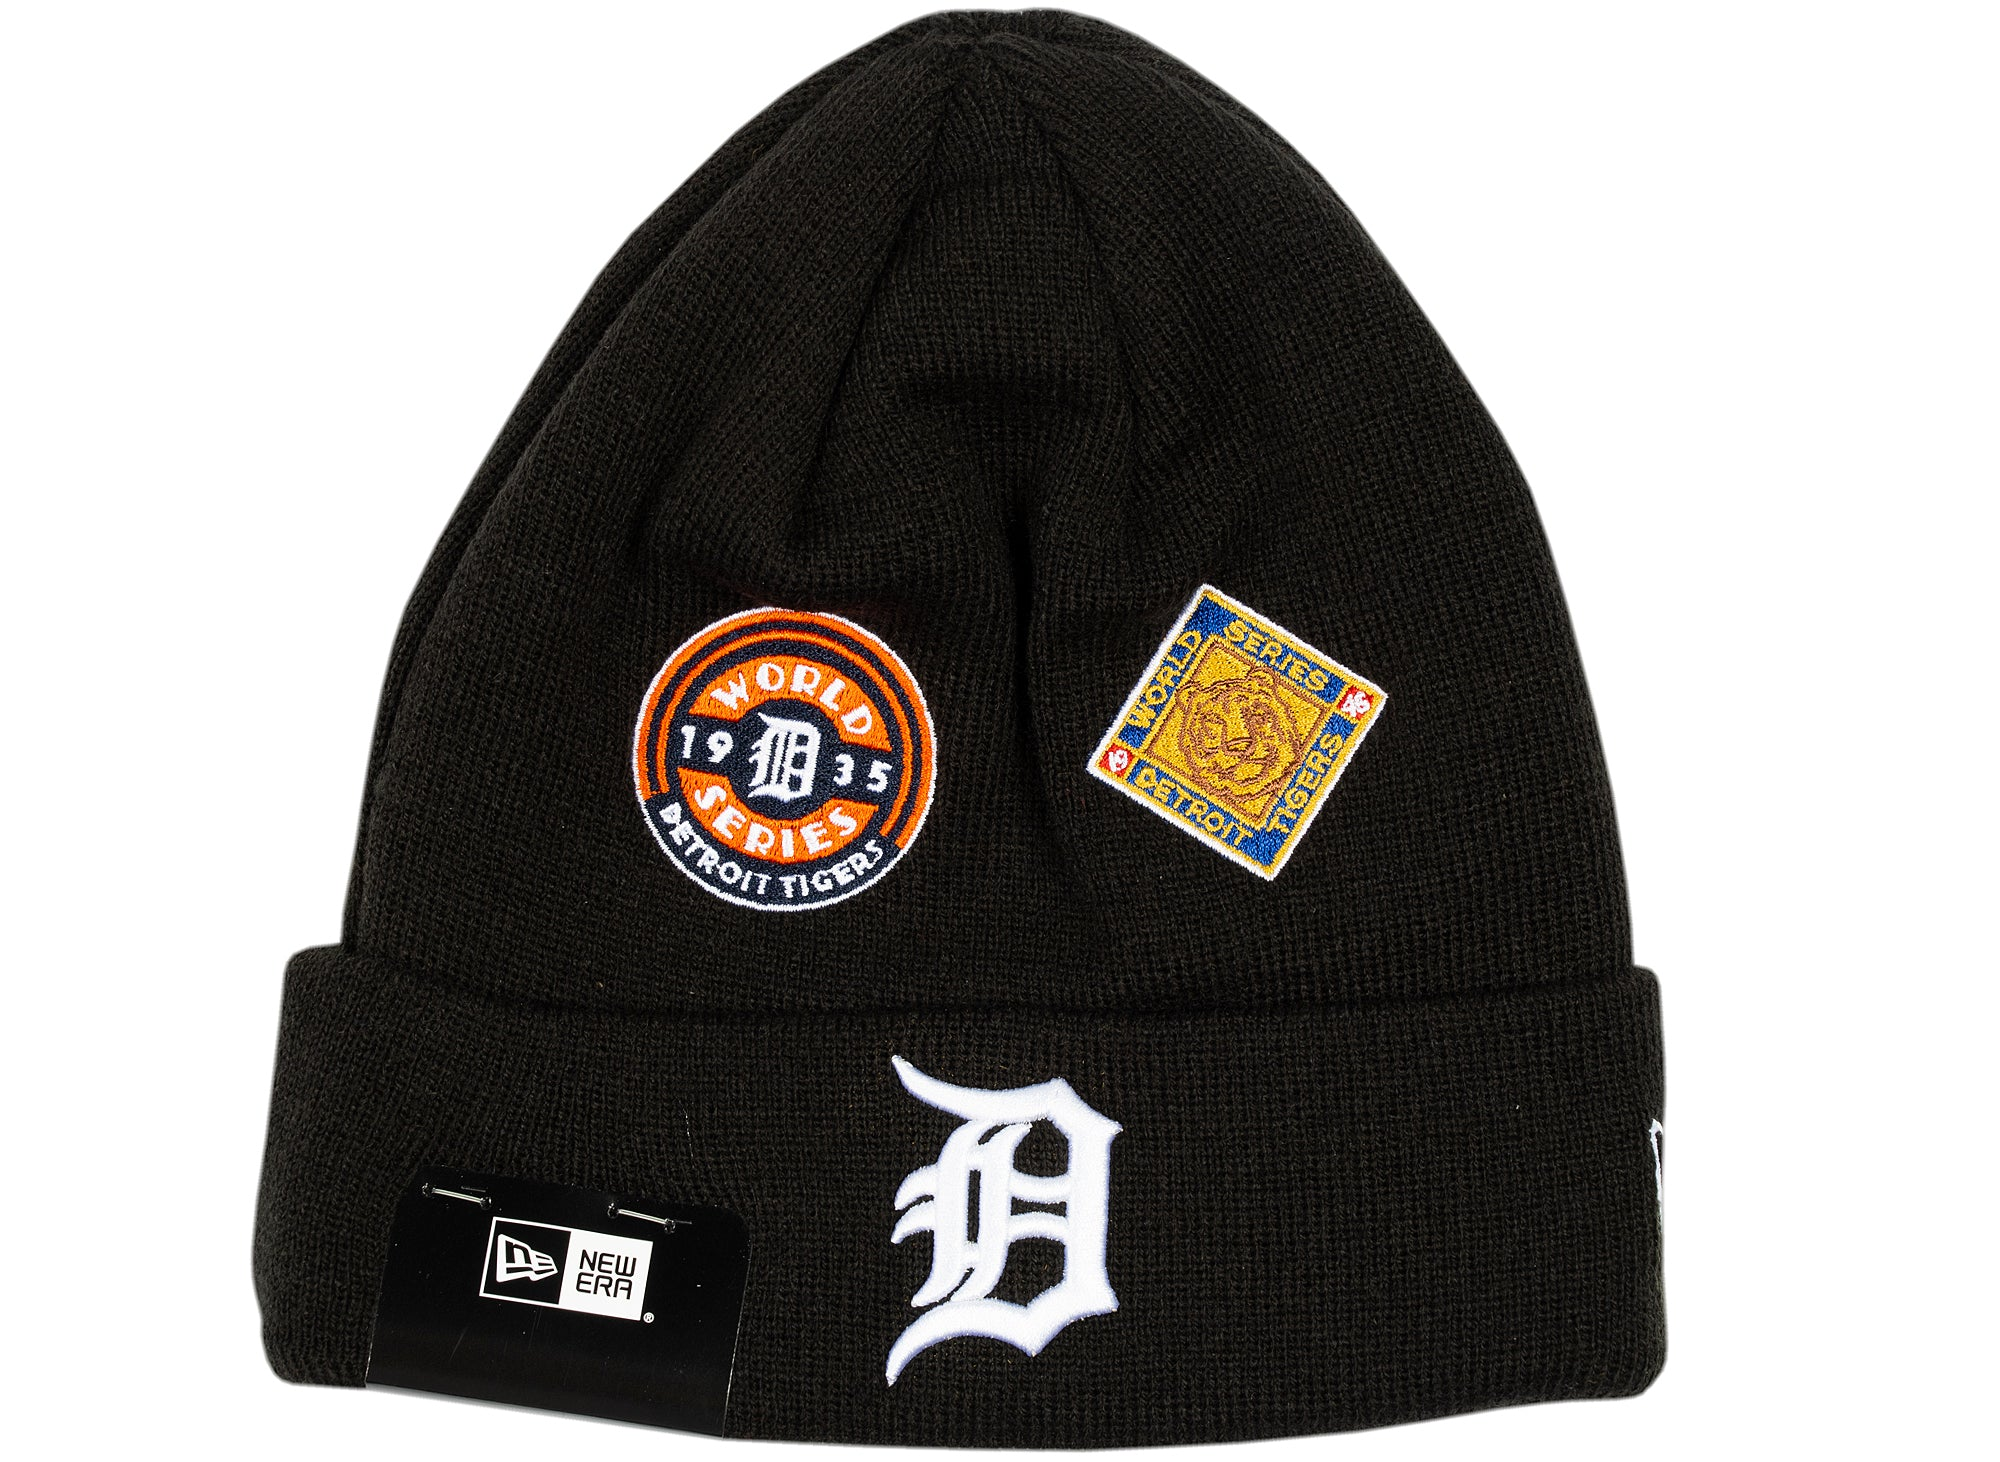 New Era Tigers Knit Cuff Beanie xld